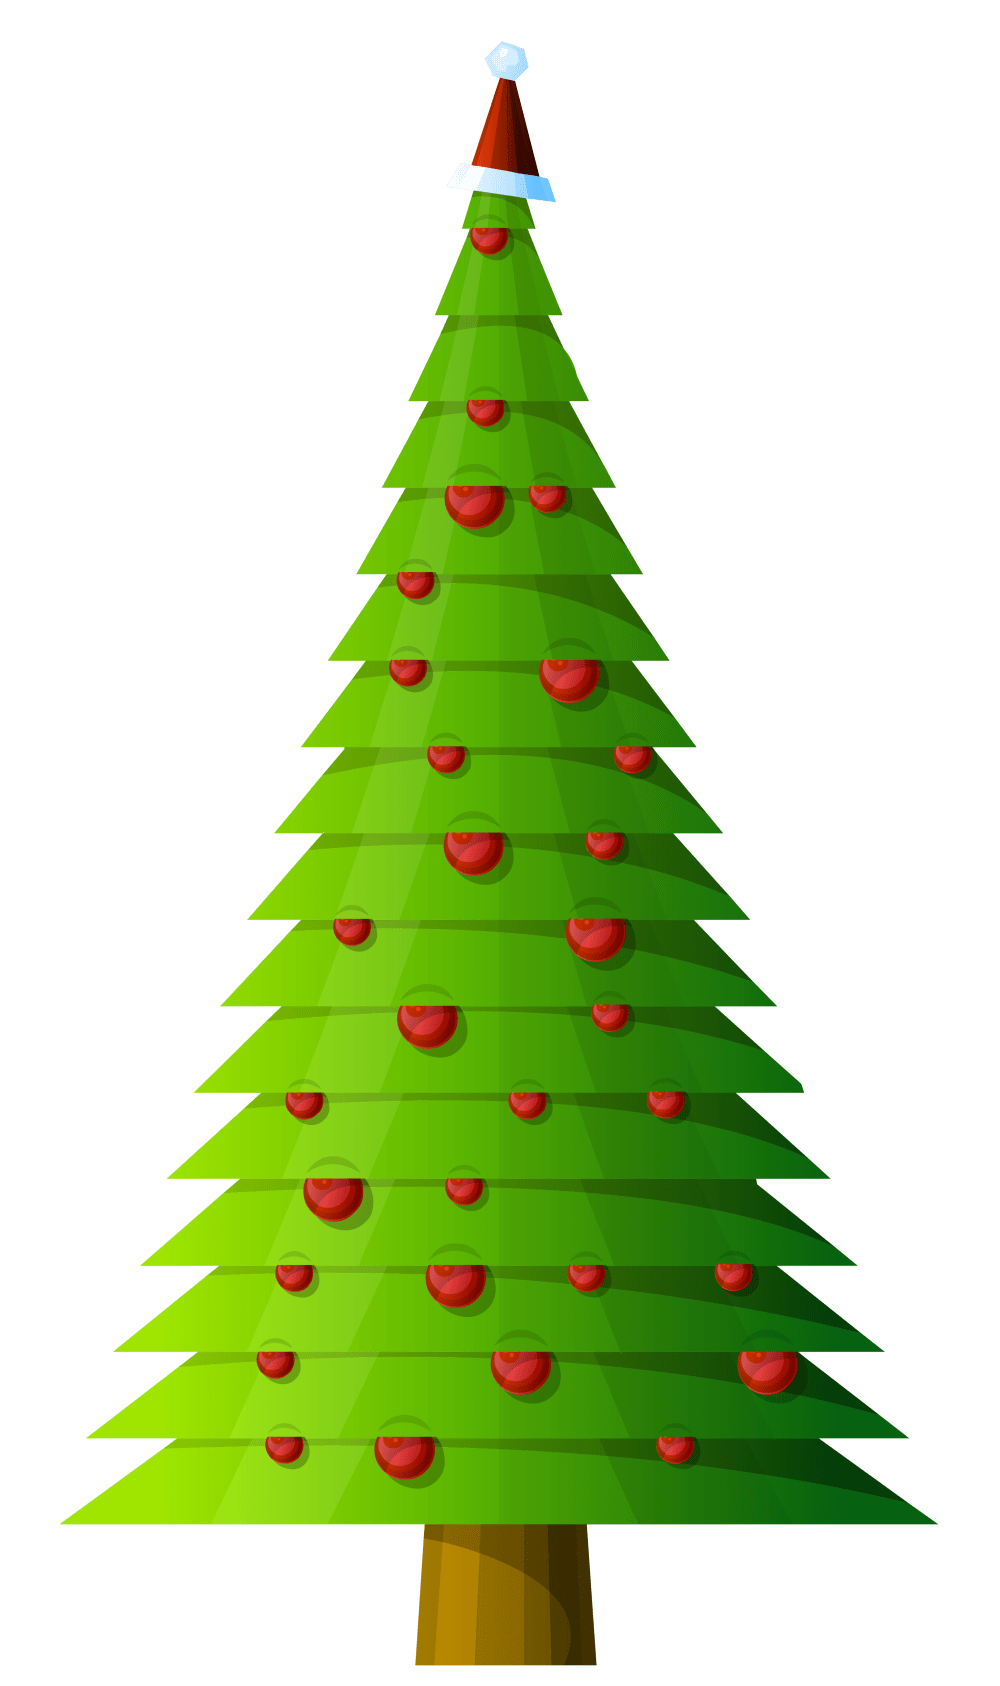 medium resolution of 1350x1800 christmas tree clipart free 2915x4917 christmas tree modern style transparent png clipartu200b gallery